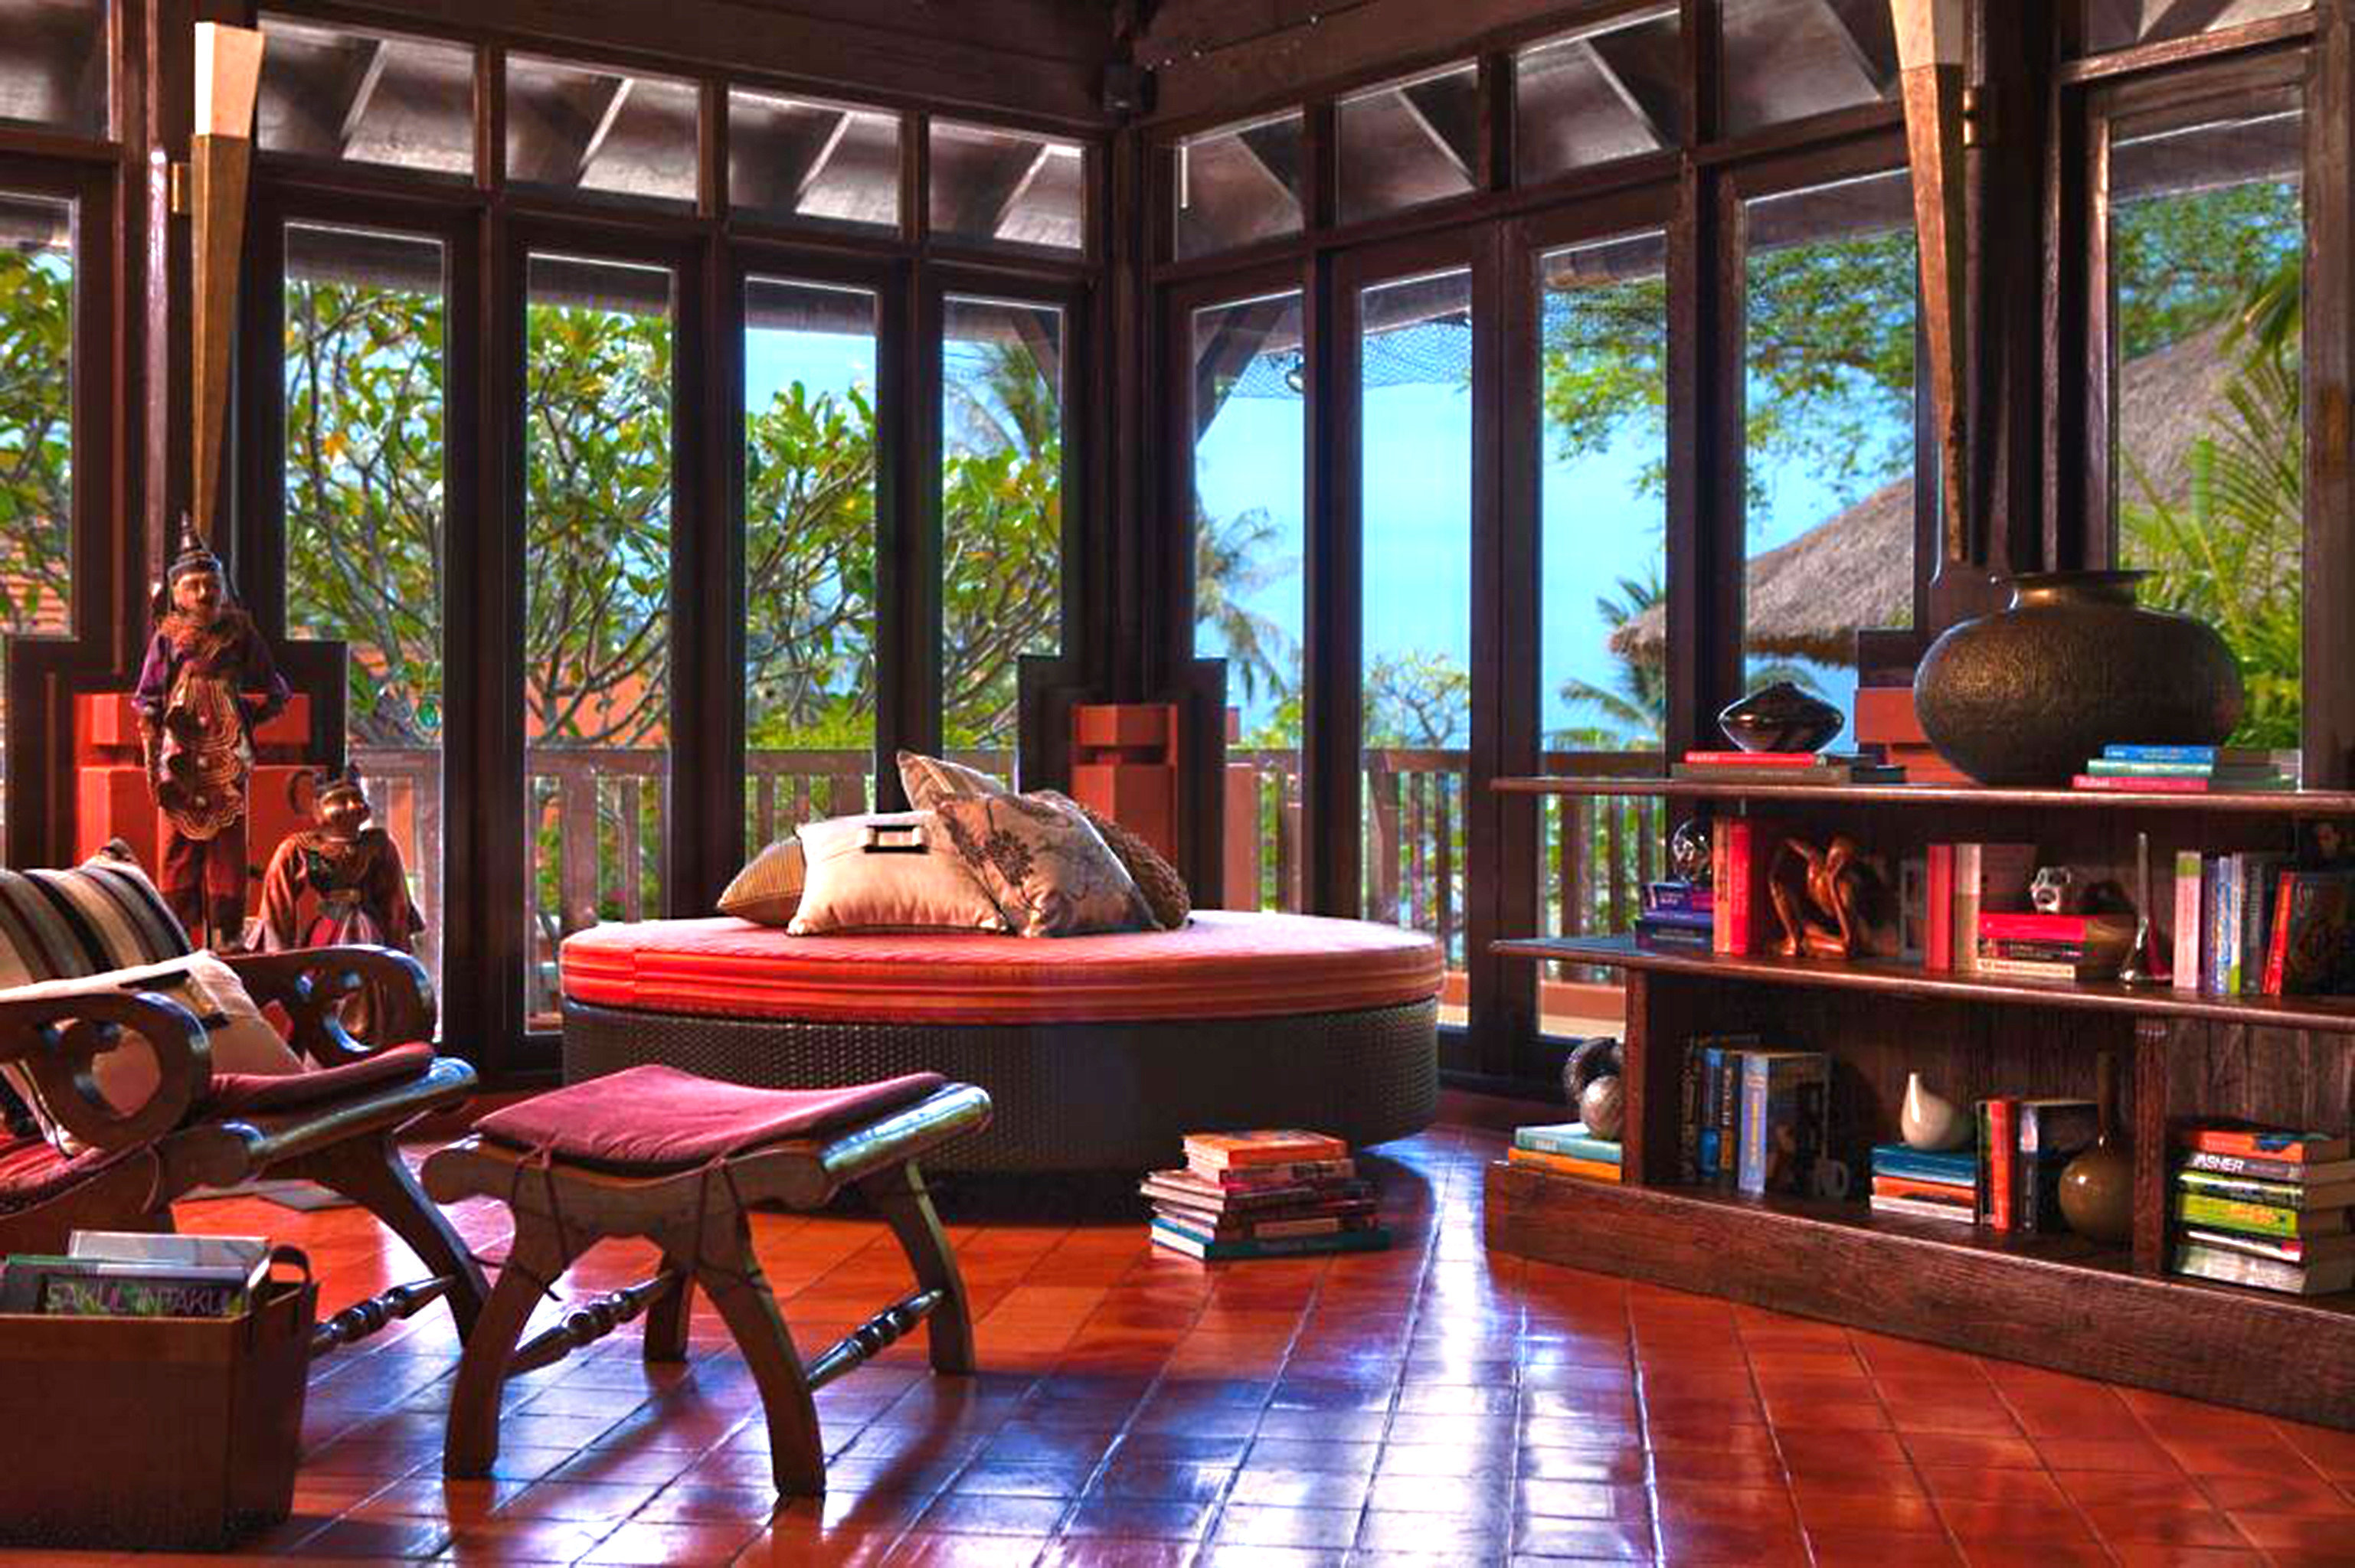 Balcony Beachfront Cultural Jungle Lounge Resort Romantic Tropical Waterfront leisure building recreation room home restaurant Bar living room dining table